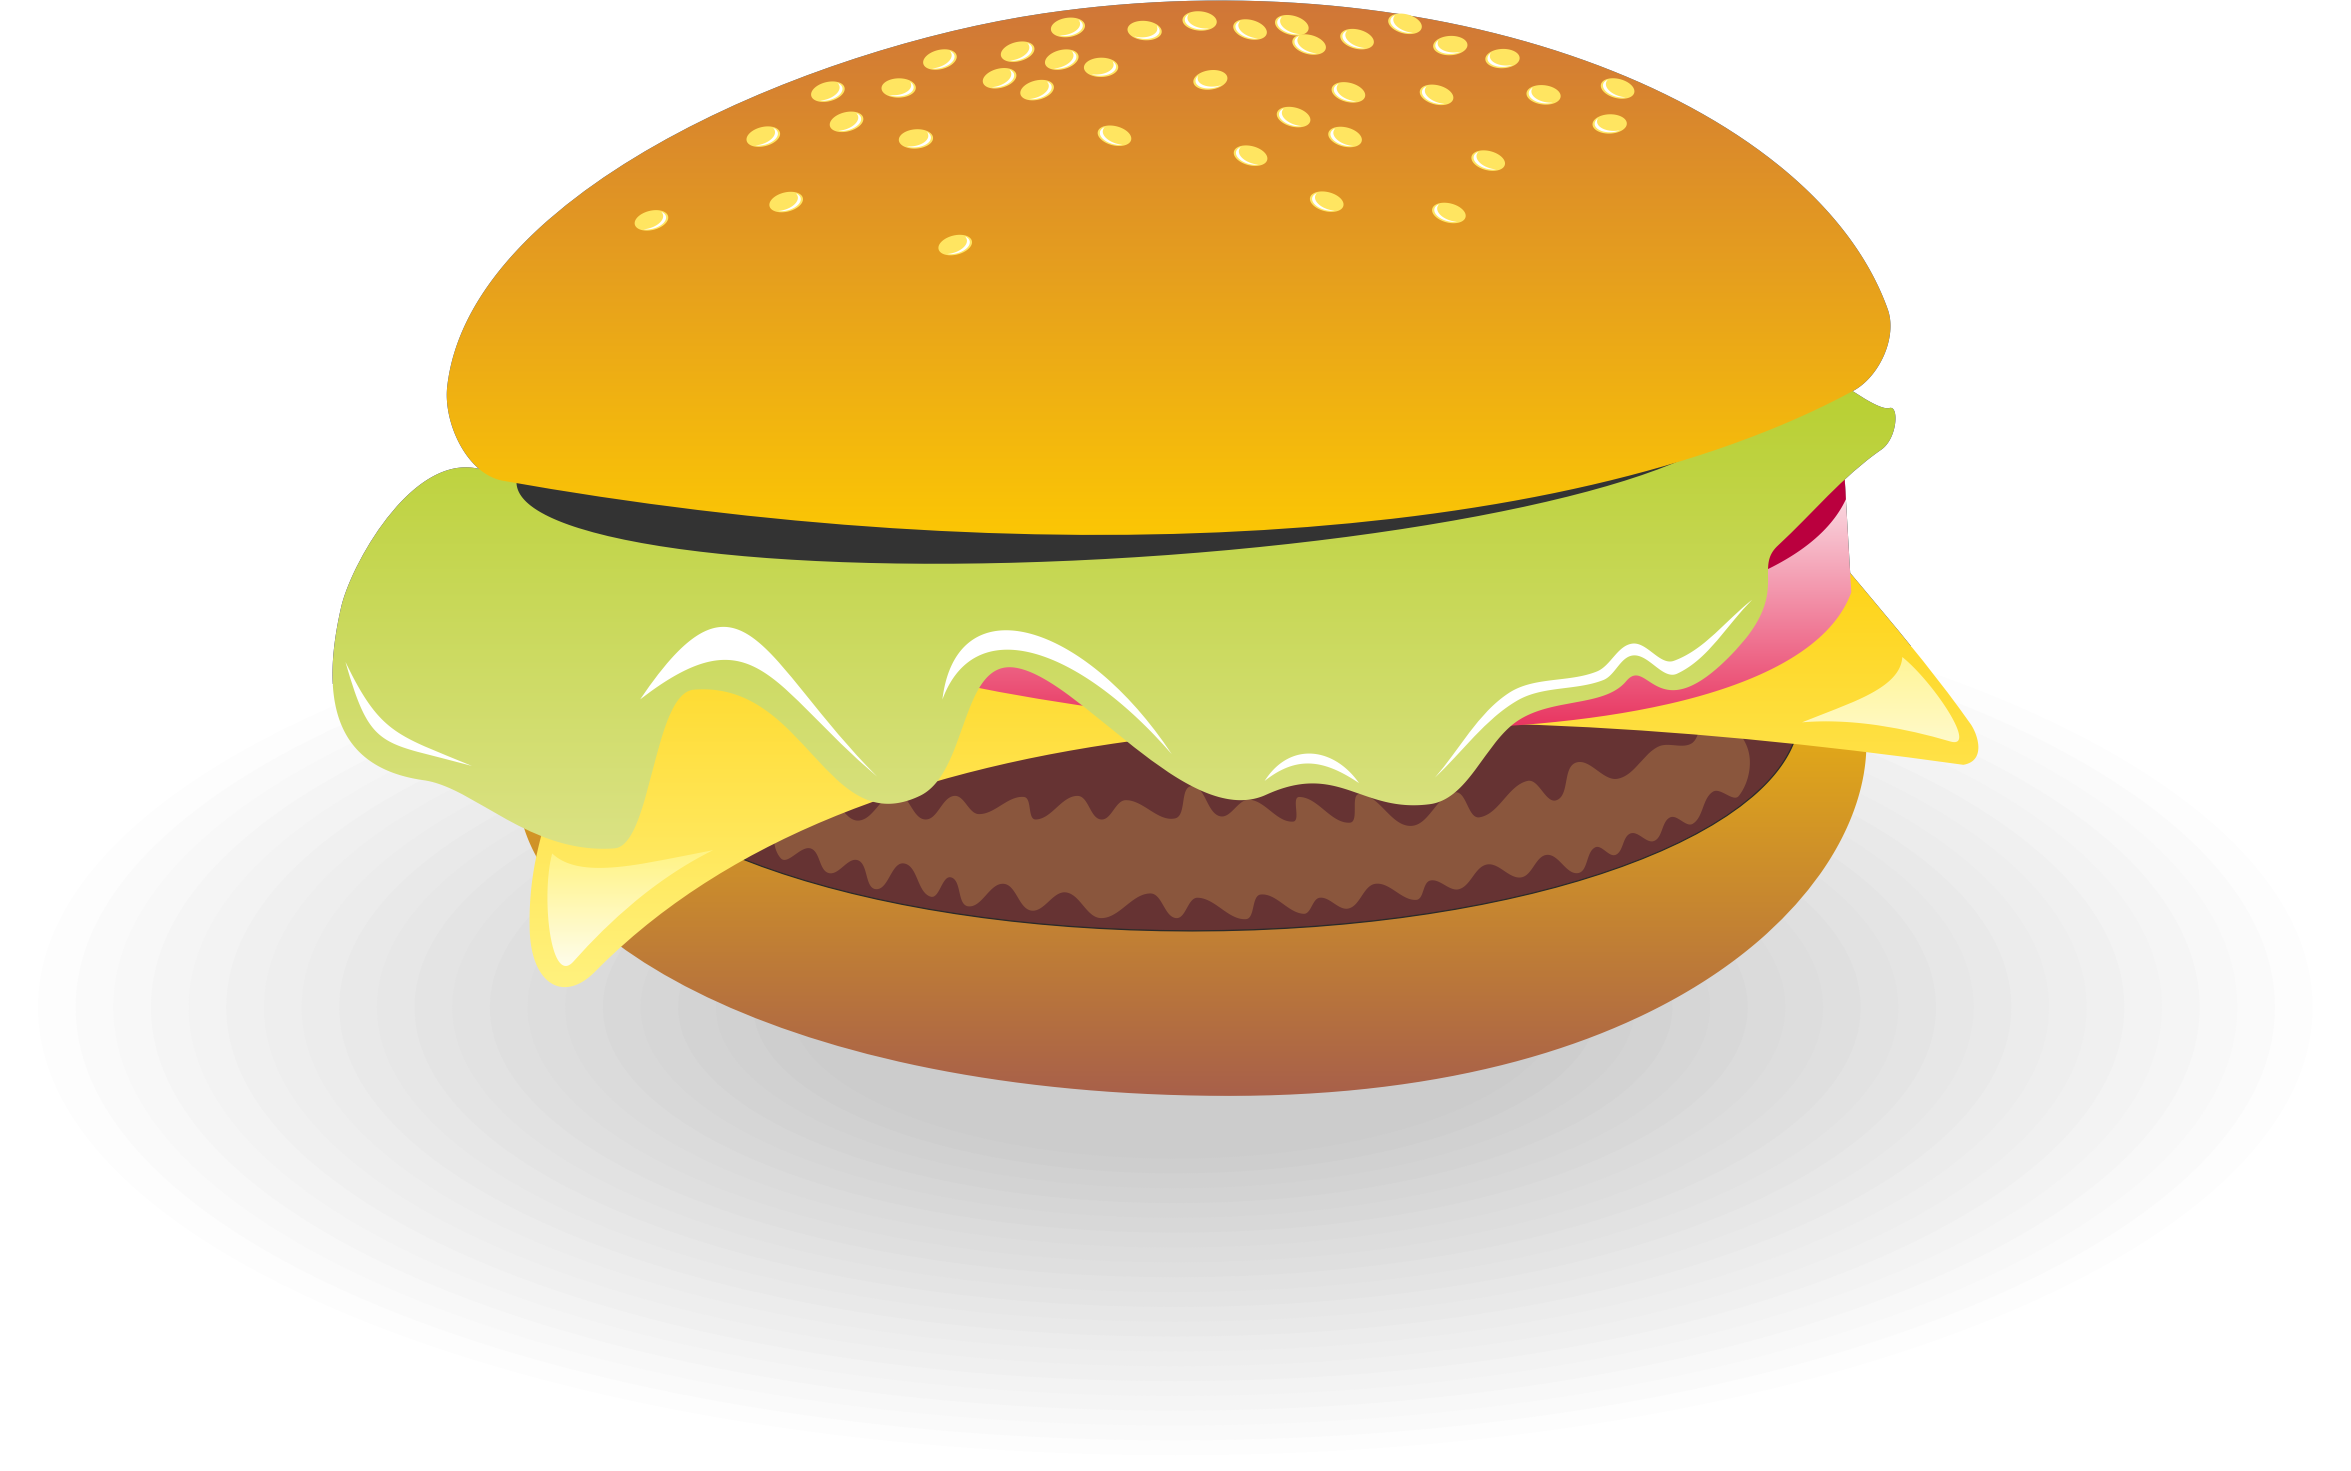 Cheeseburger vector by waider